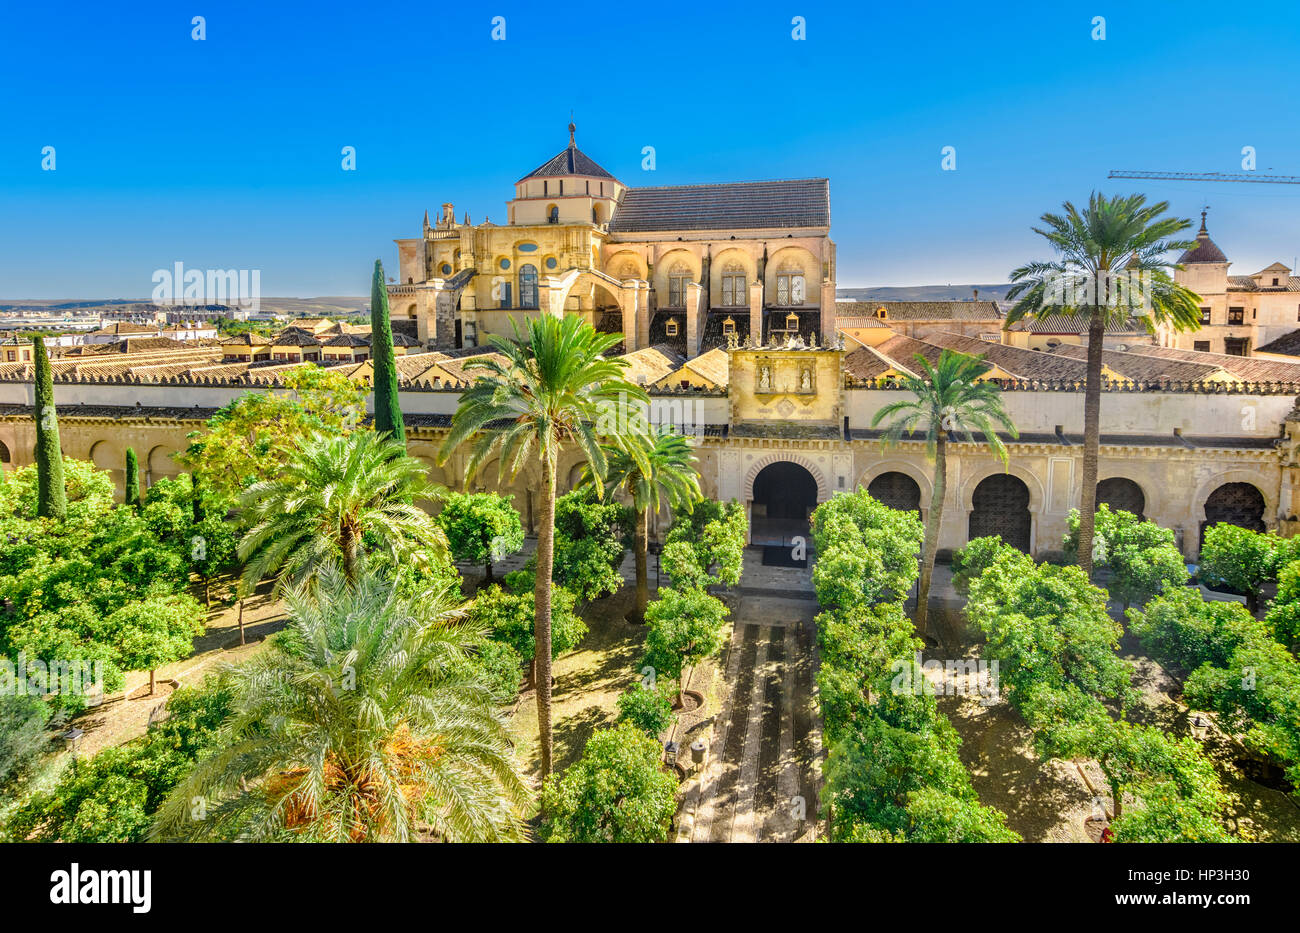 Mezquita Cathedral or The Great Mosque in the daylights seen from the bell-tower, Cordoba, Andalusia, Spain - Stock Image